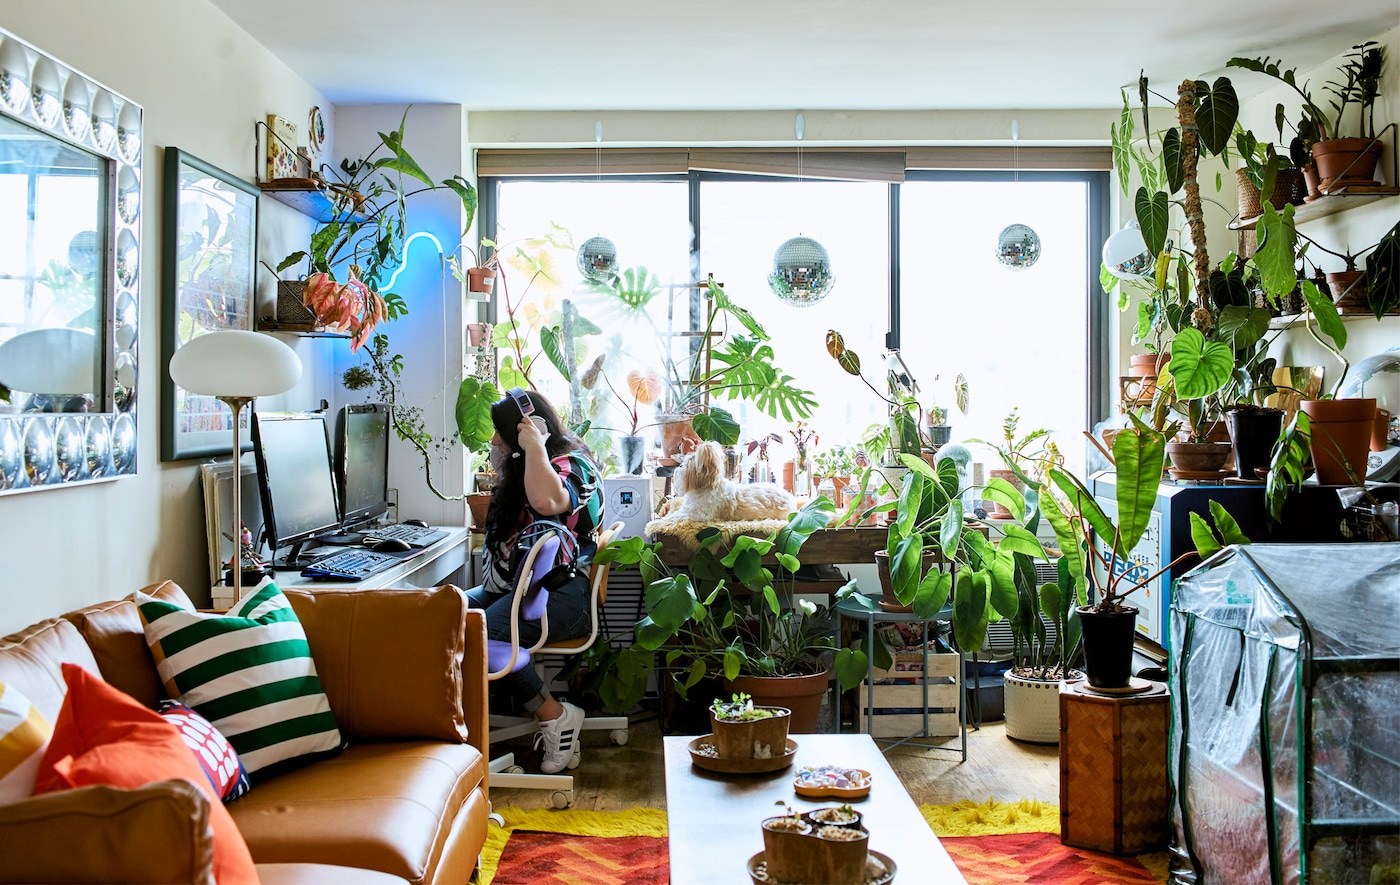 An open-plan living area with a plant display and workspace in front of a window.